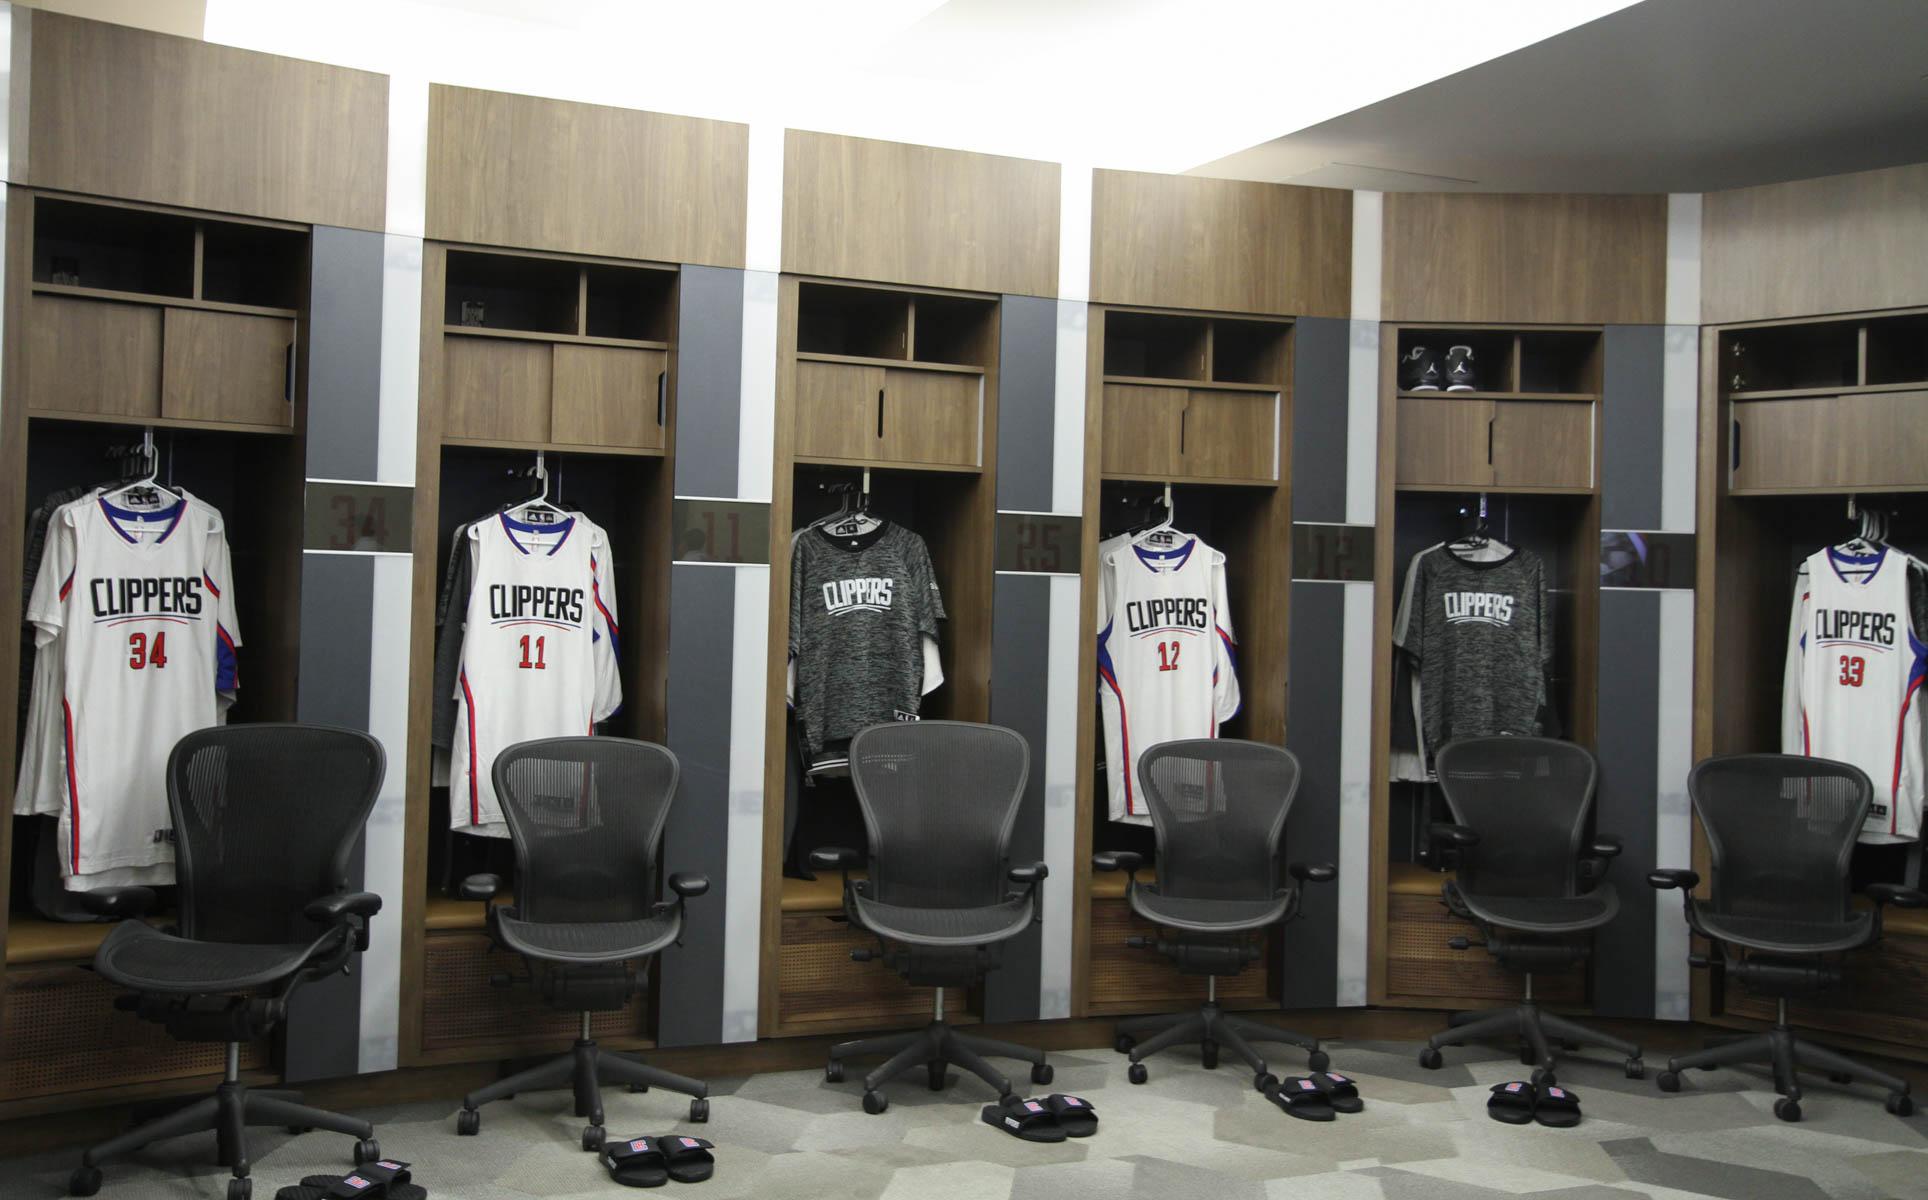 Shot of lockers with chairs and shower slippers in front of each one